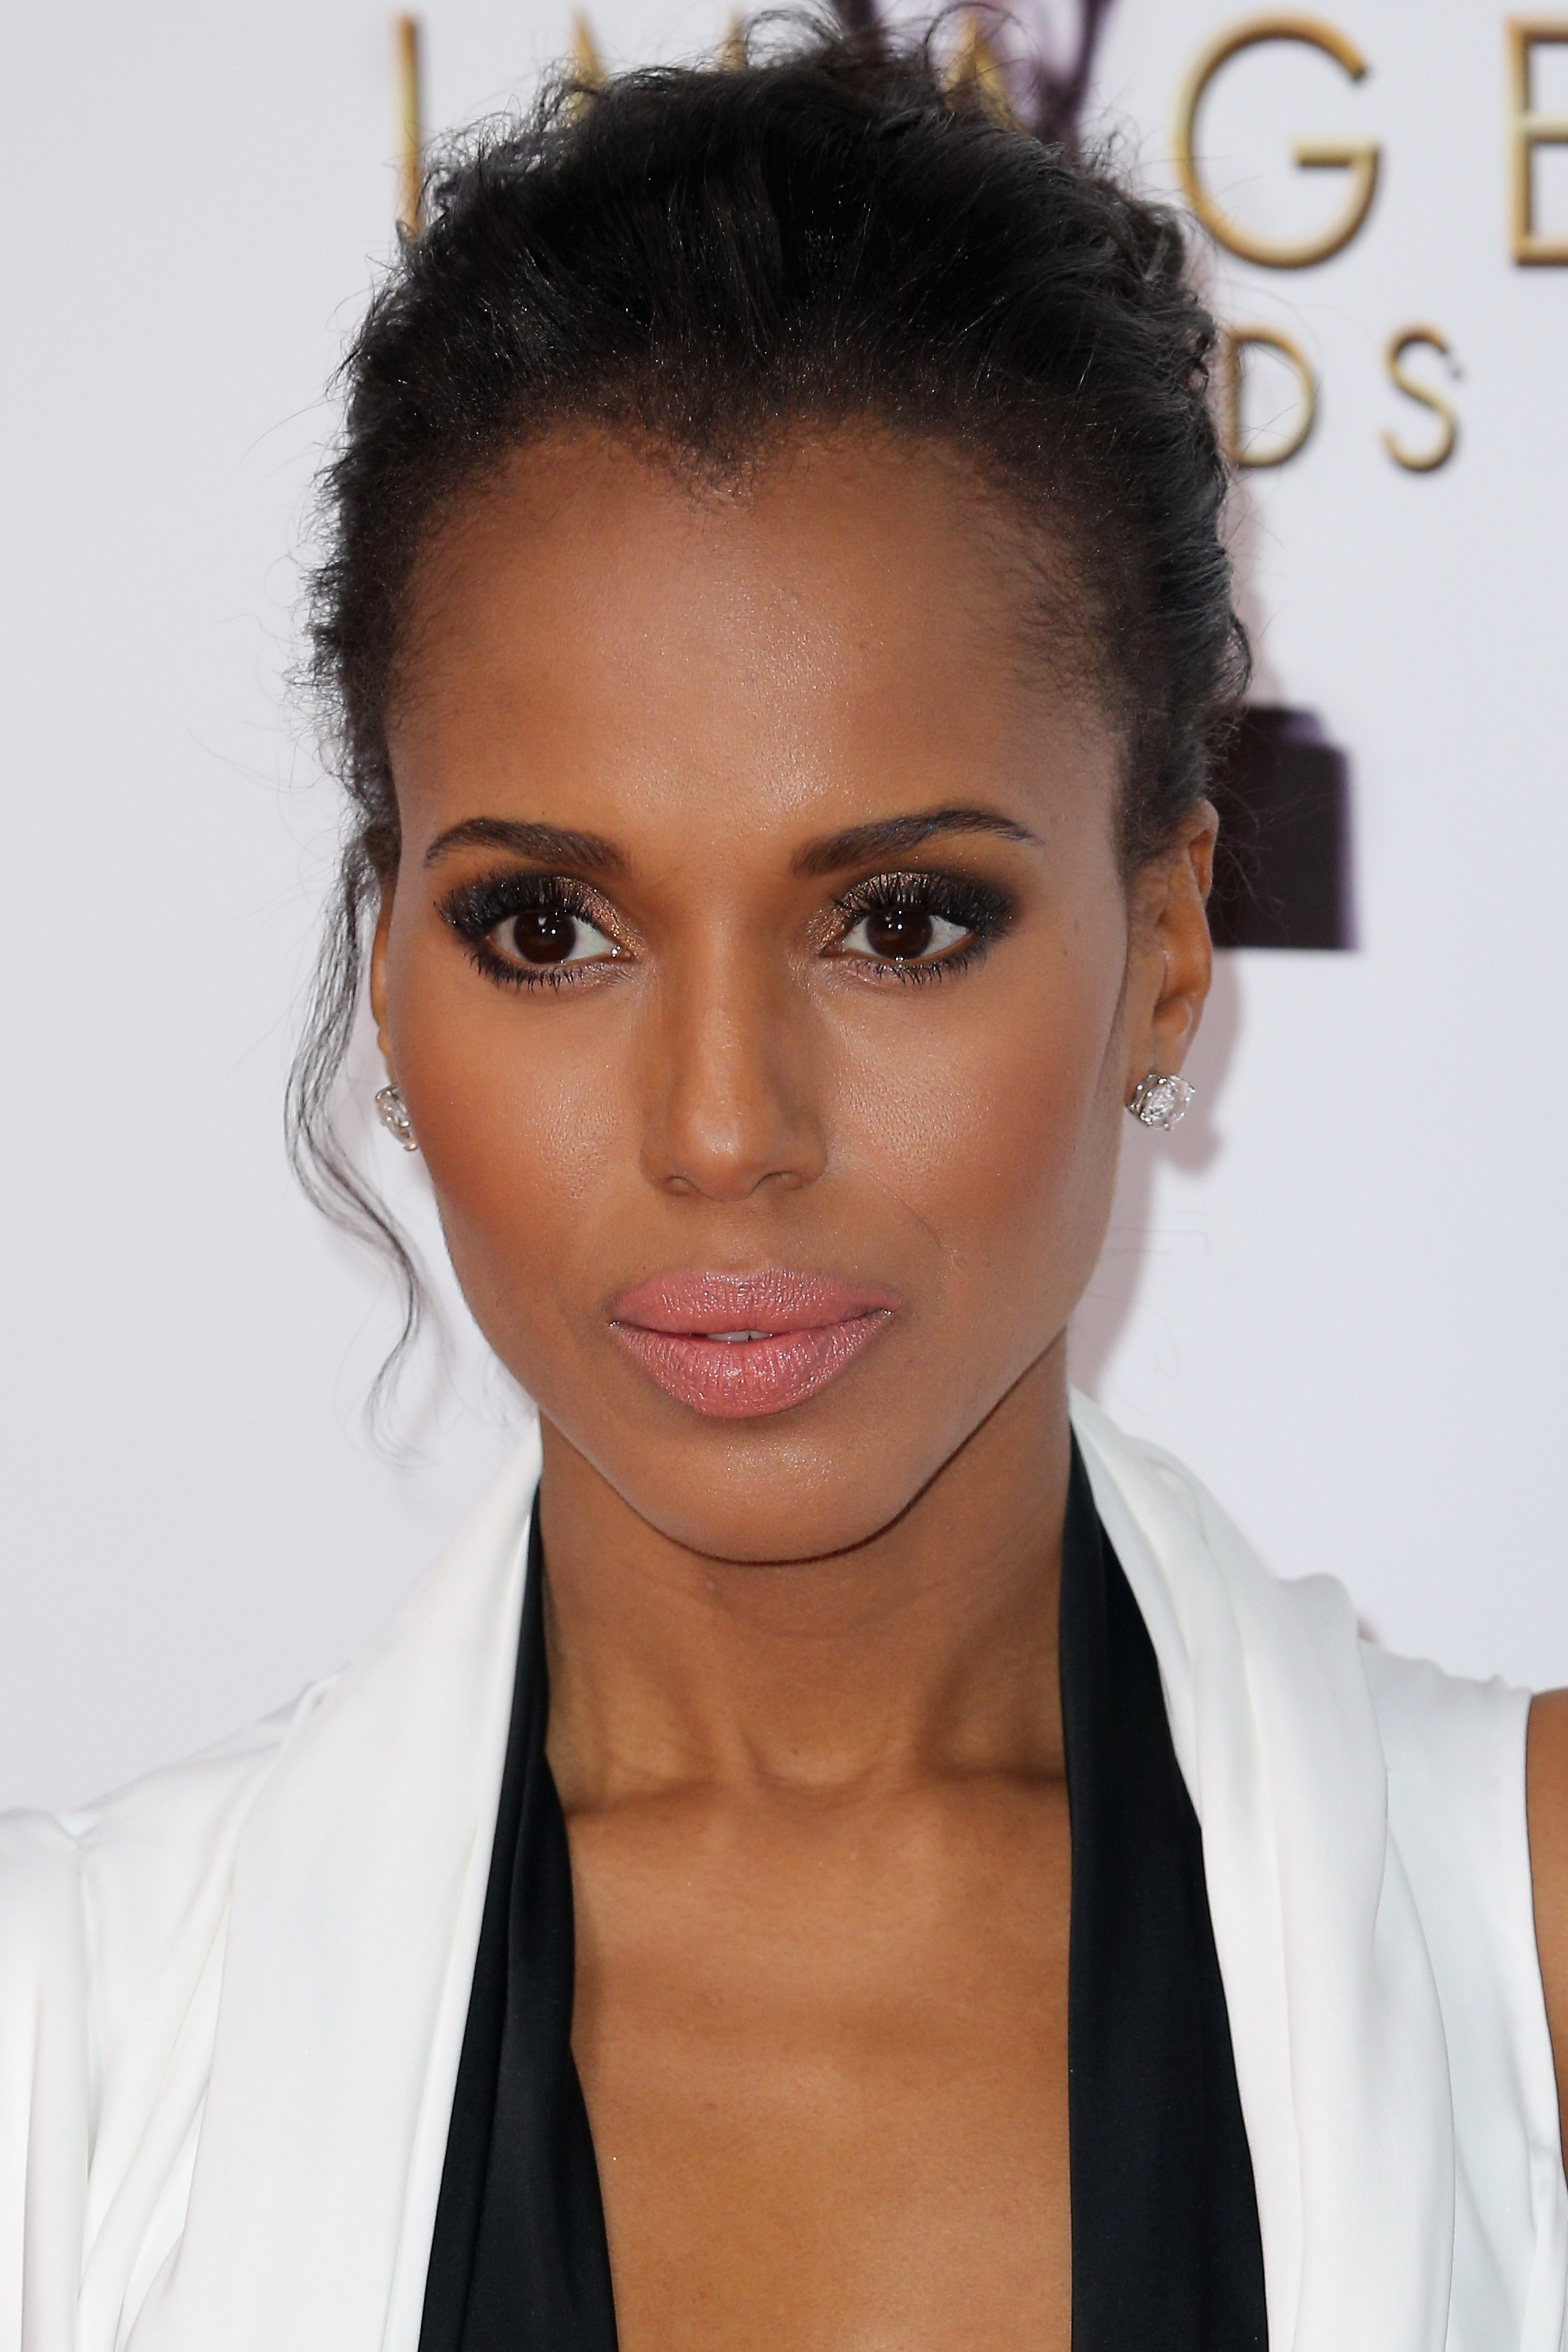 Kerry washington Gallery